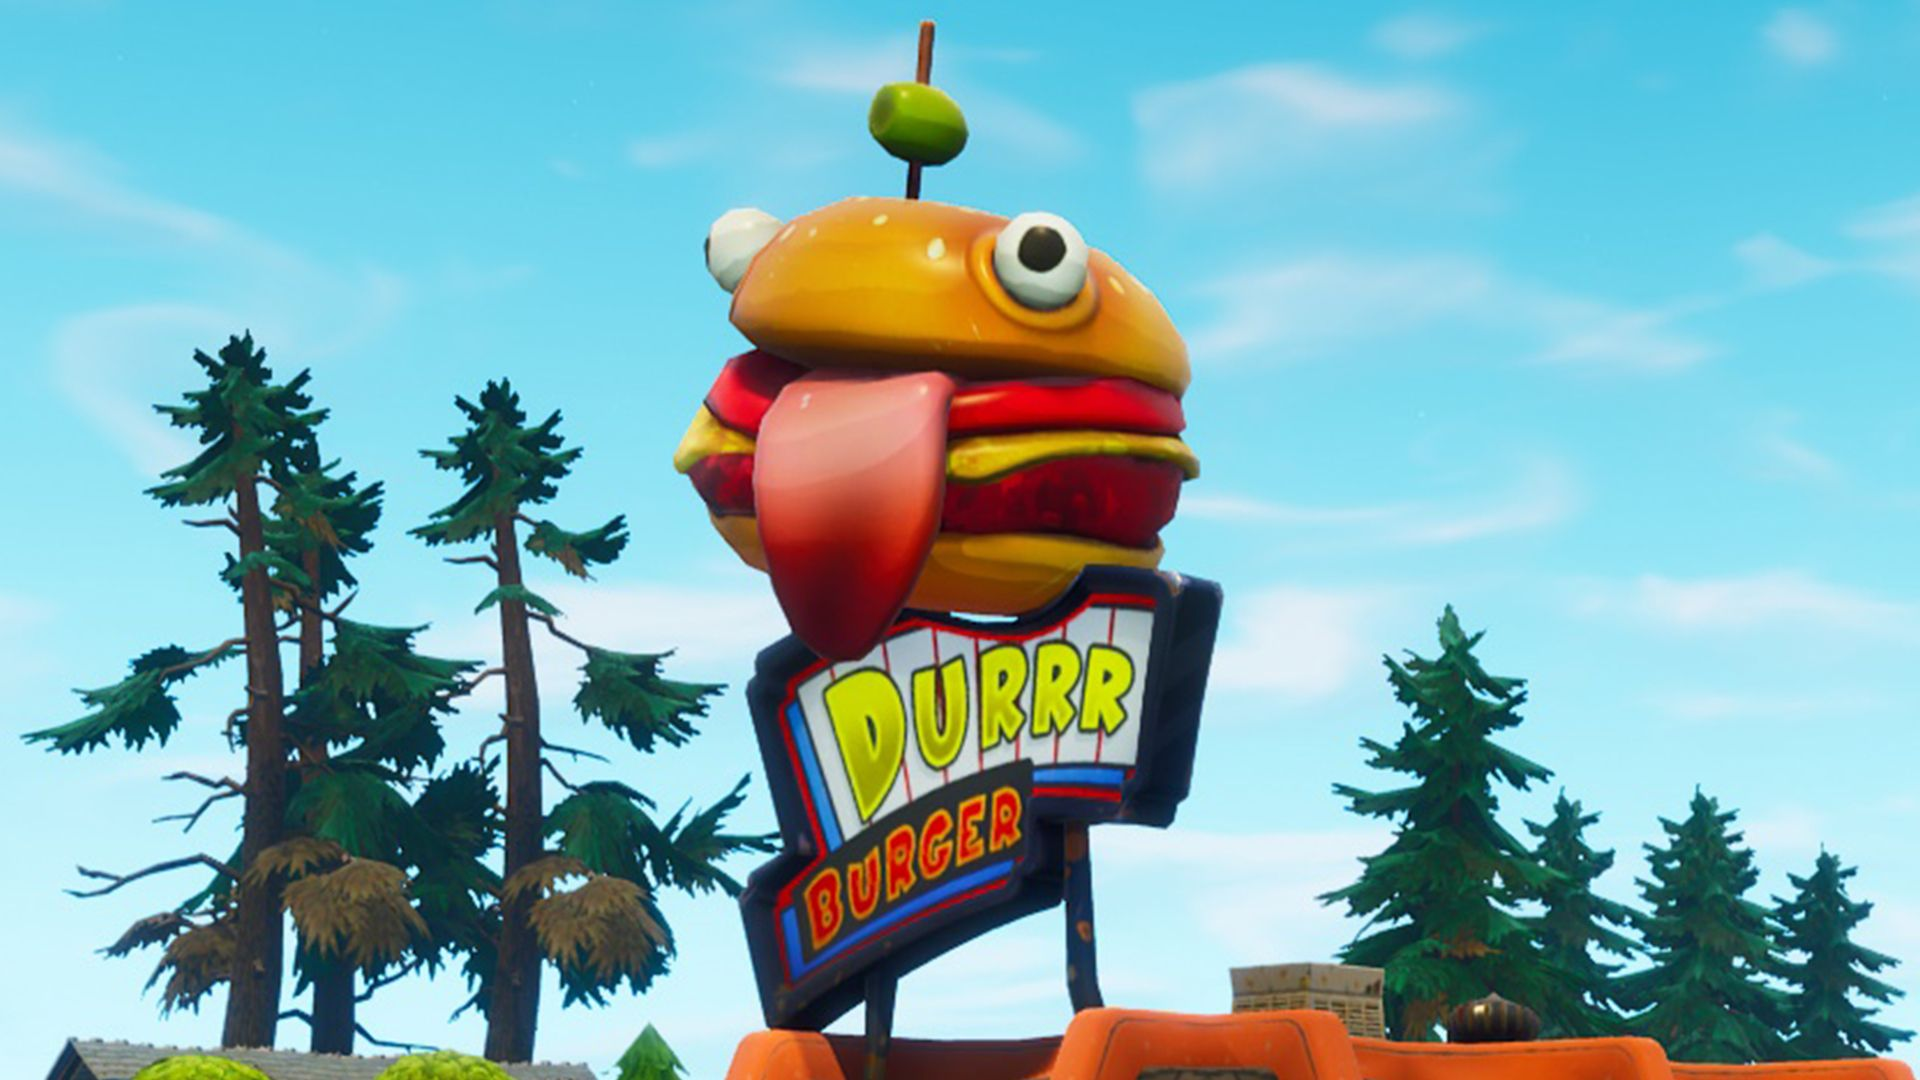 1920x1080 Fortnite's new skins include the Durr Burger, a sushi chef, and The ...